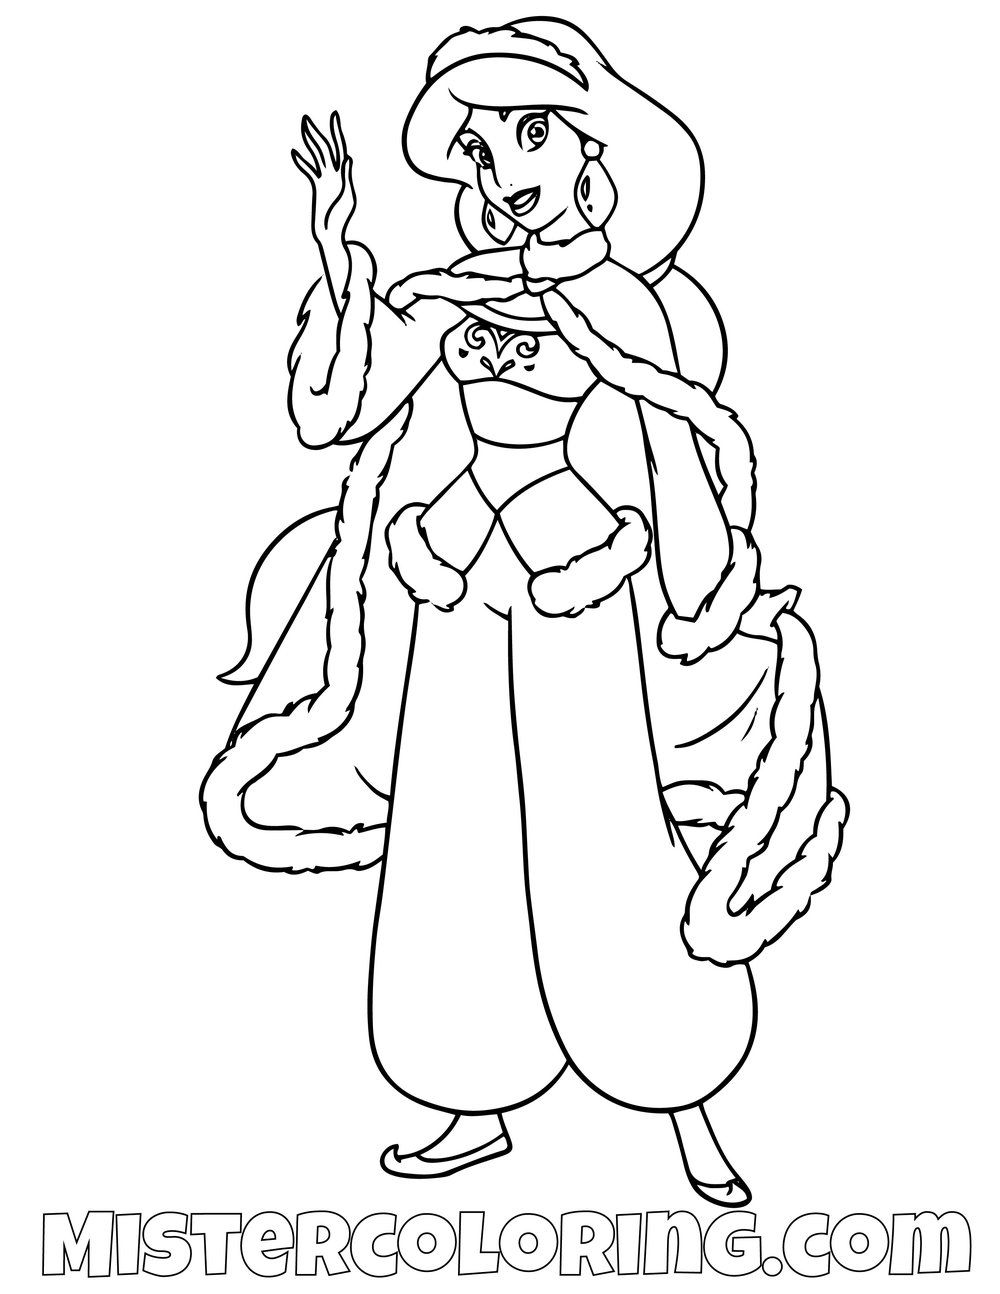 Princess Jasmine With Winter Sweater Aladdin Coloring Page For